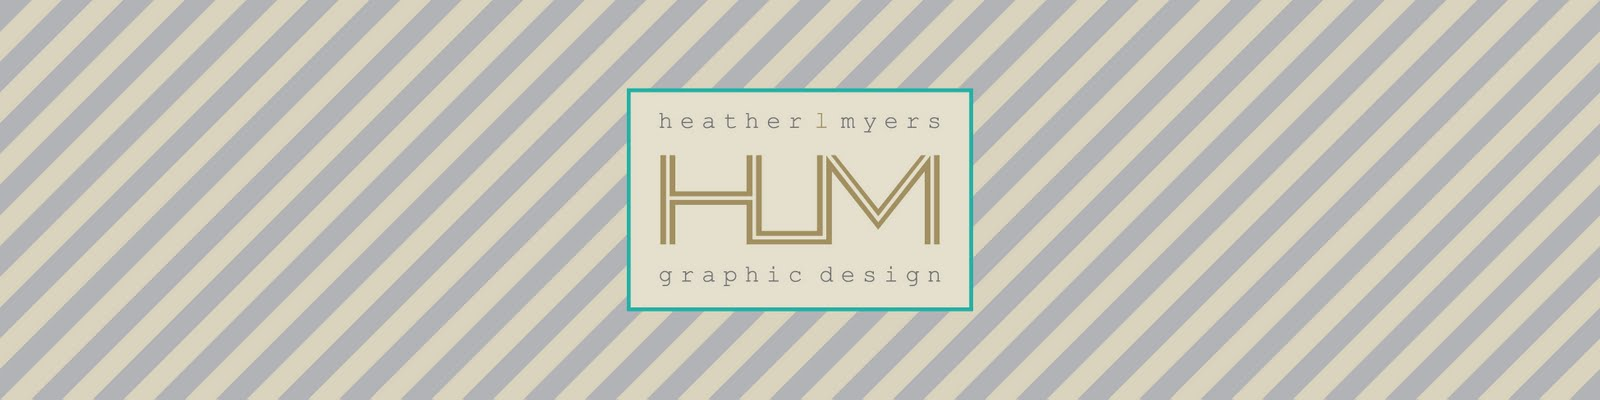 Heather L Myers : graphic design